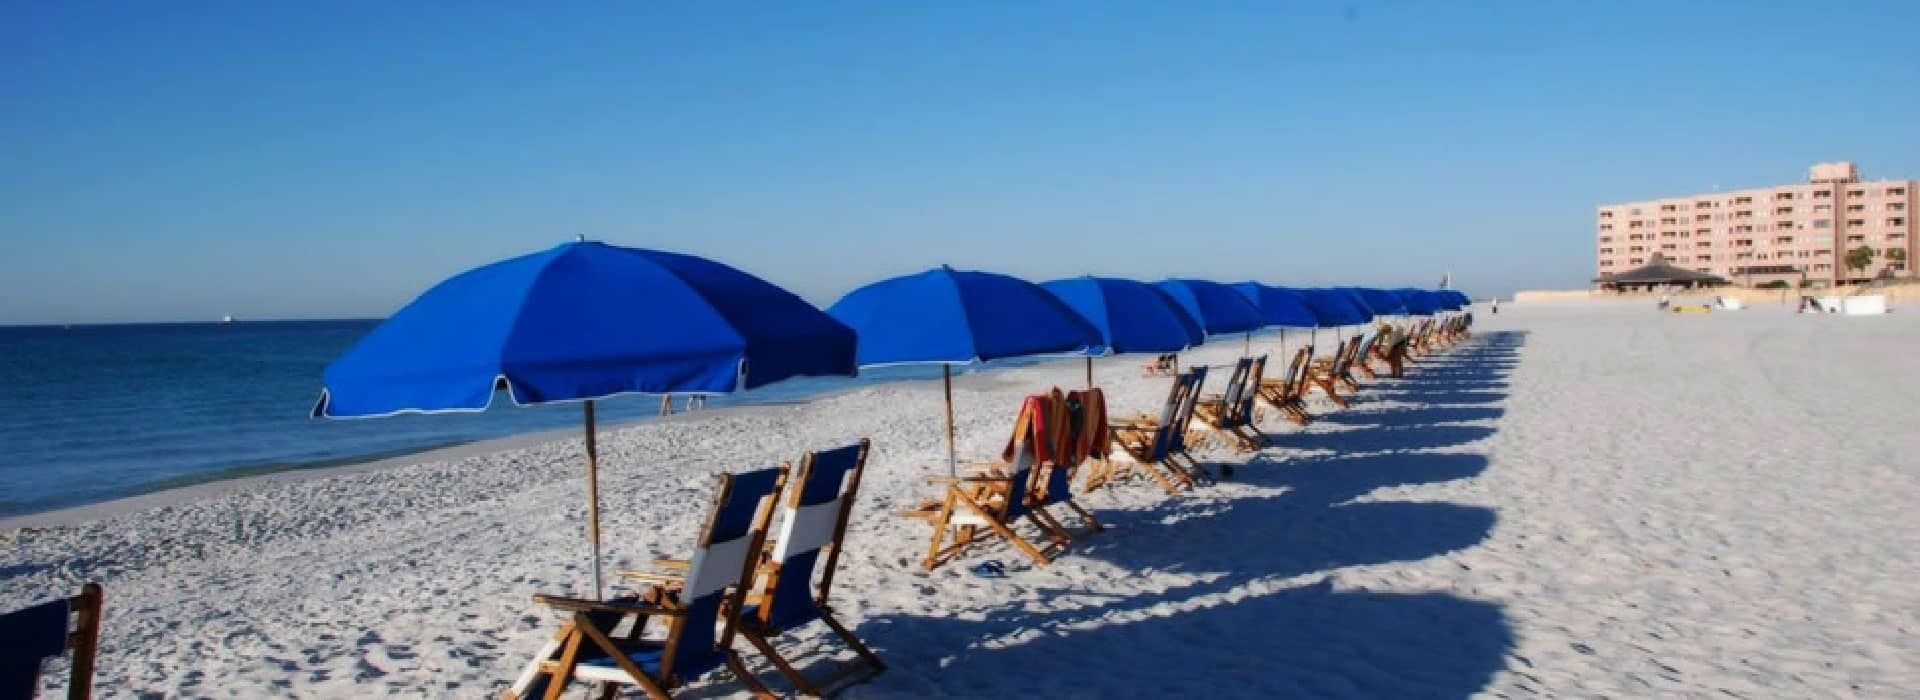 Holiday Surf & Racquet Club 117 Condo rental in Holiday Surf & Racquet Club in Destin Florida - #22